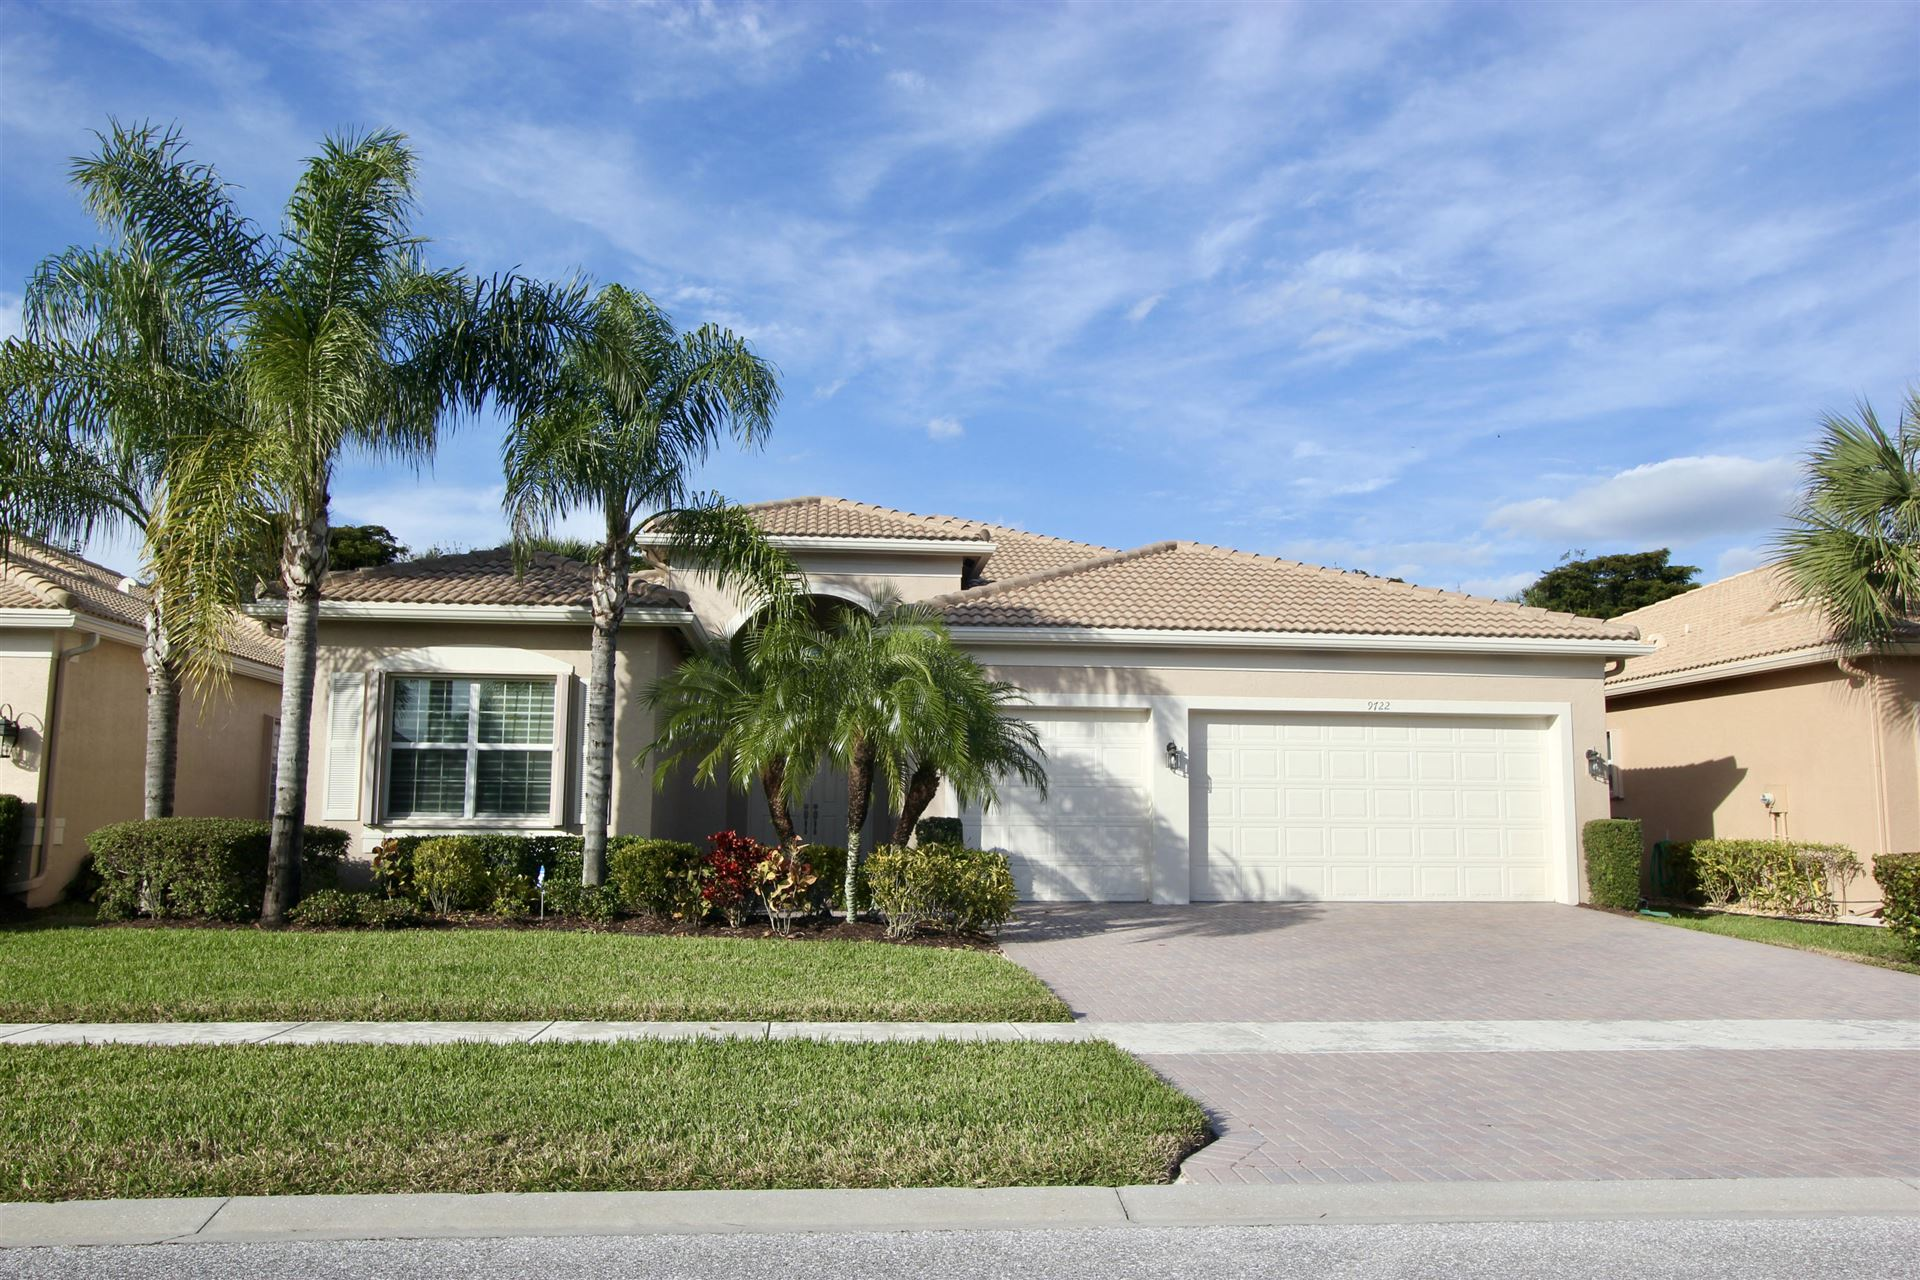 Photo of 9722 Dovetree Isle Drive, Boynton Beach, FL 33473 (MLS # RX-10685529)